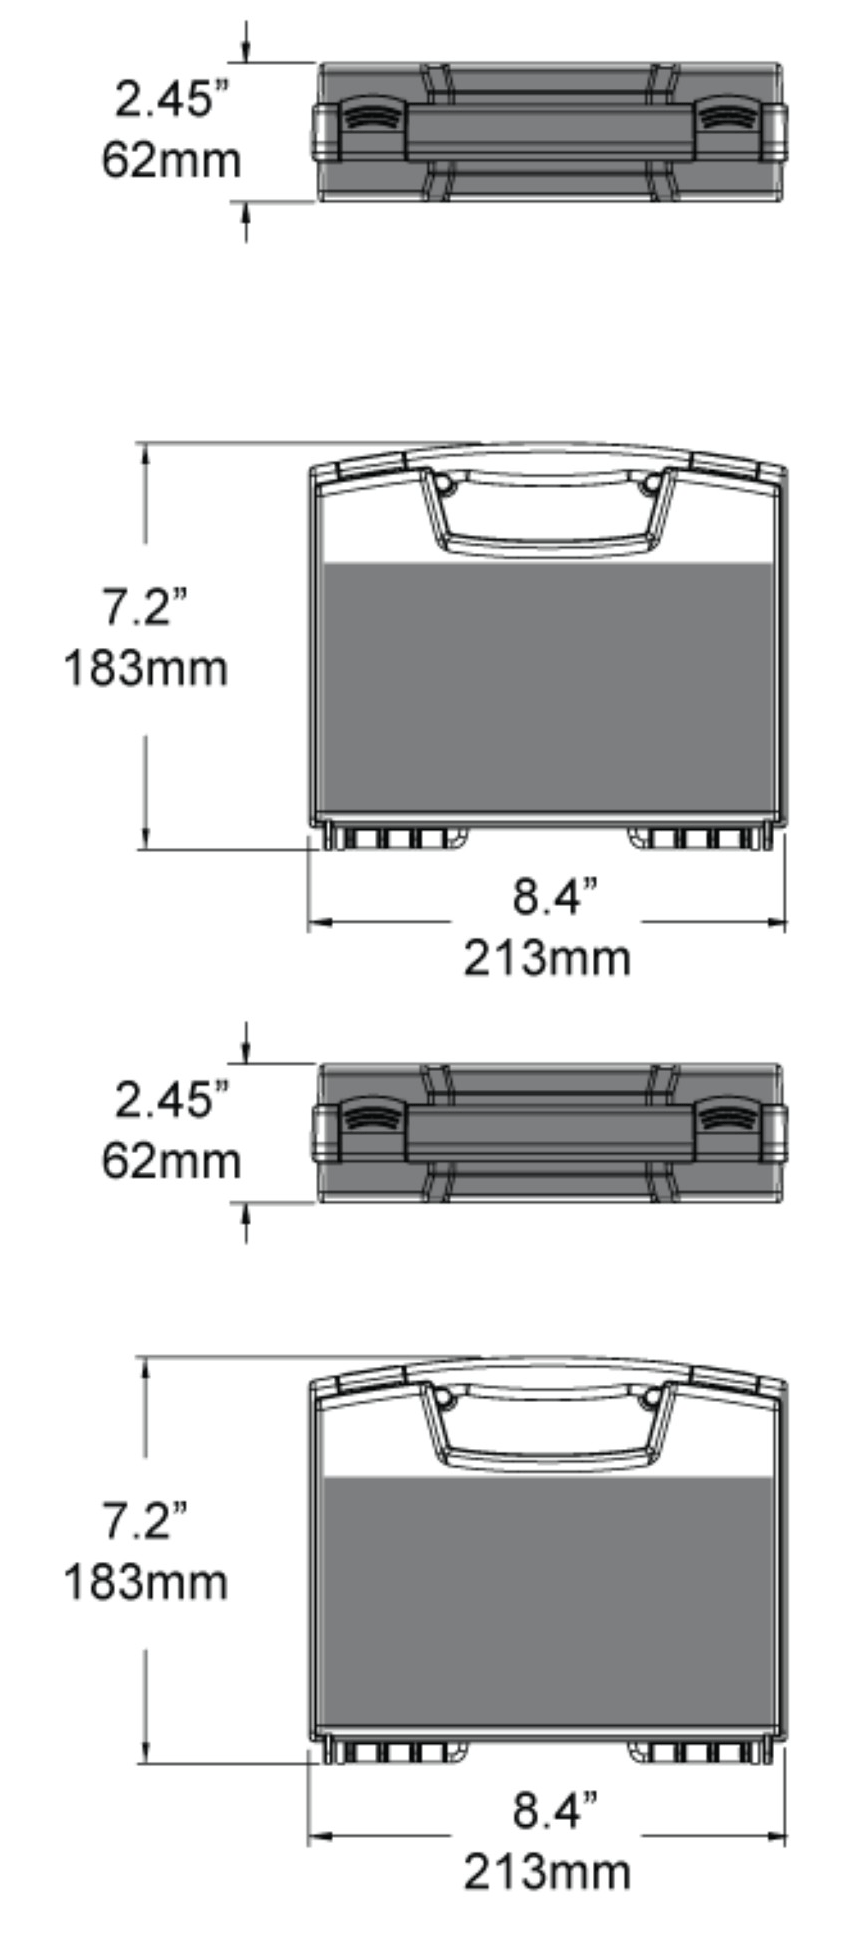 Dimensions of the 643 Micro-Kitcase Hard Case